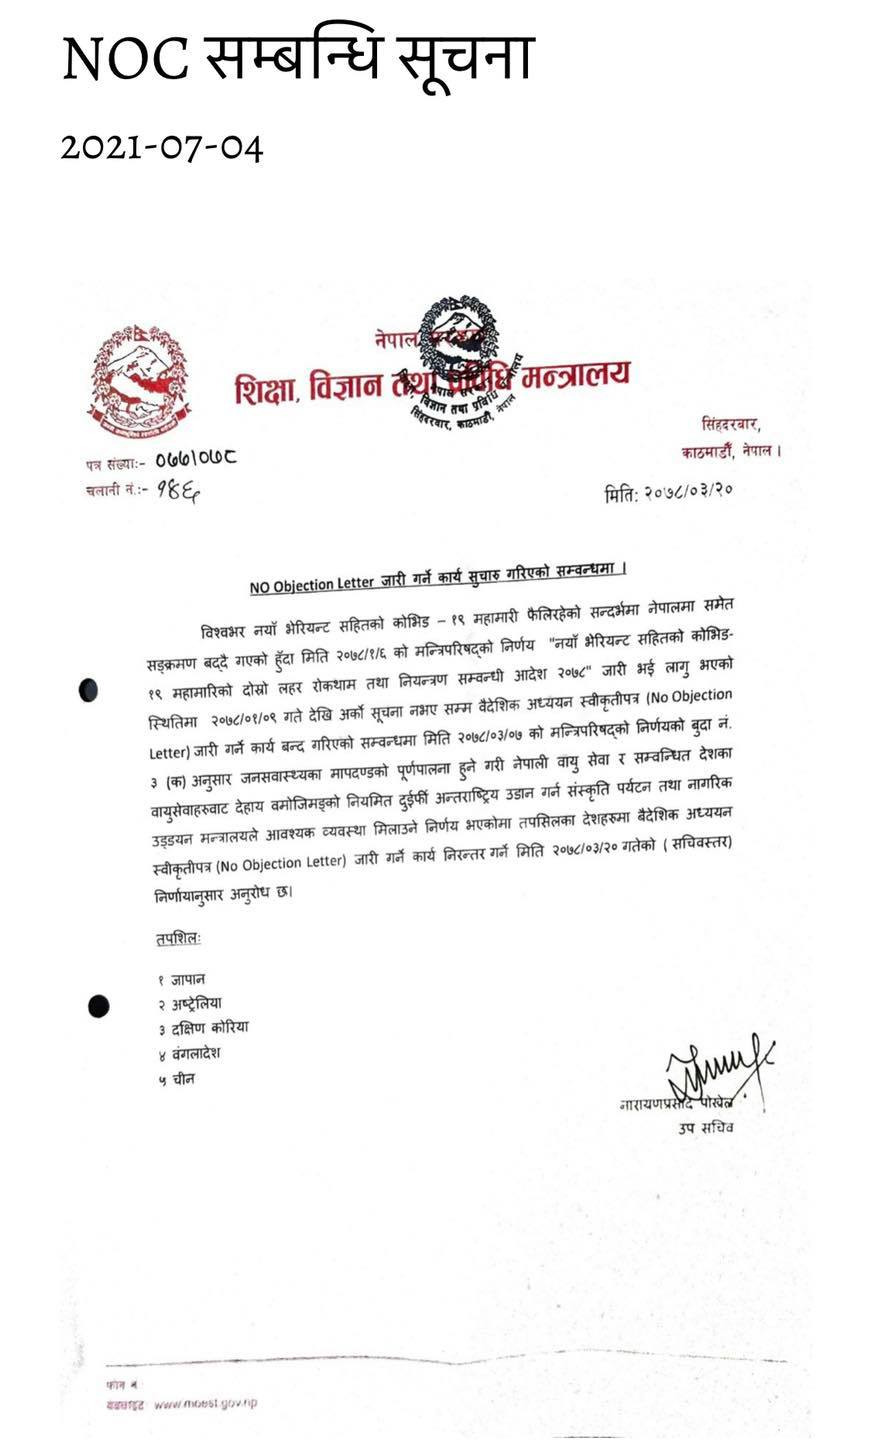 NOC letter latest update July 4, 2021